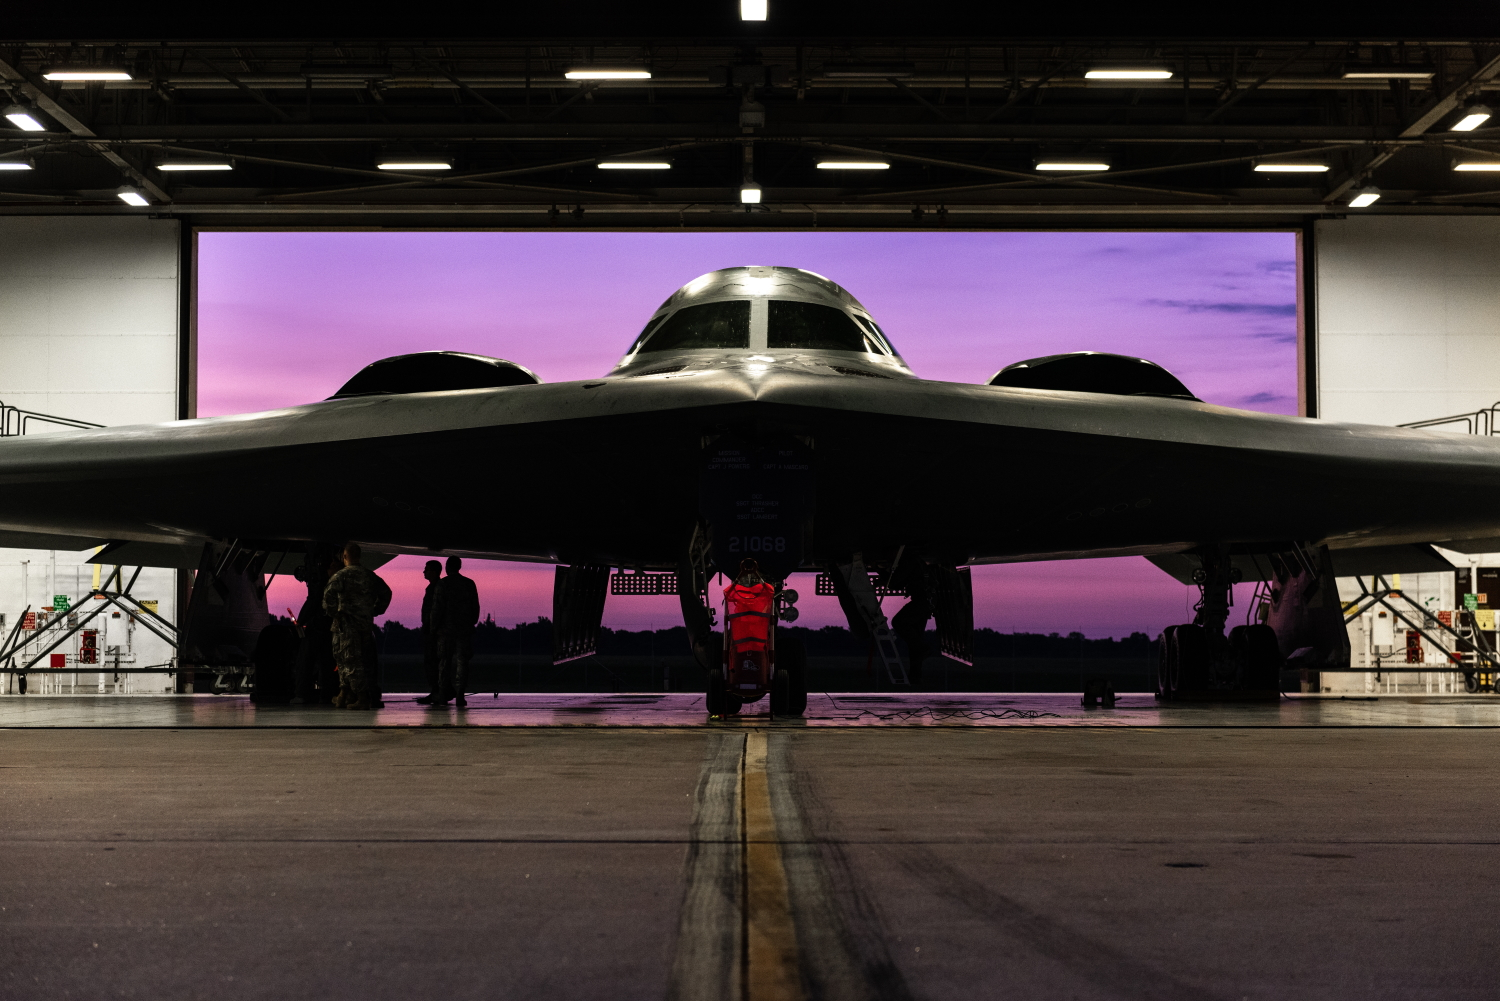 A B-2 Spirit aircraft is prepped for launch July 17, 2019, at Whiteman Air Force Base, Mo. Whiteman AFB is celebrating the 30th anniversary of the inaugural flight of the B-2 in 1989. (Senior Airman Thomas M. Barley/Air Force)